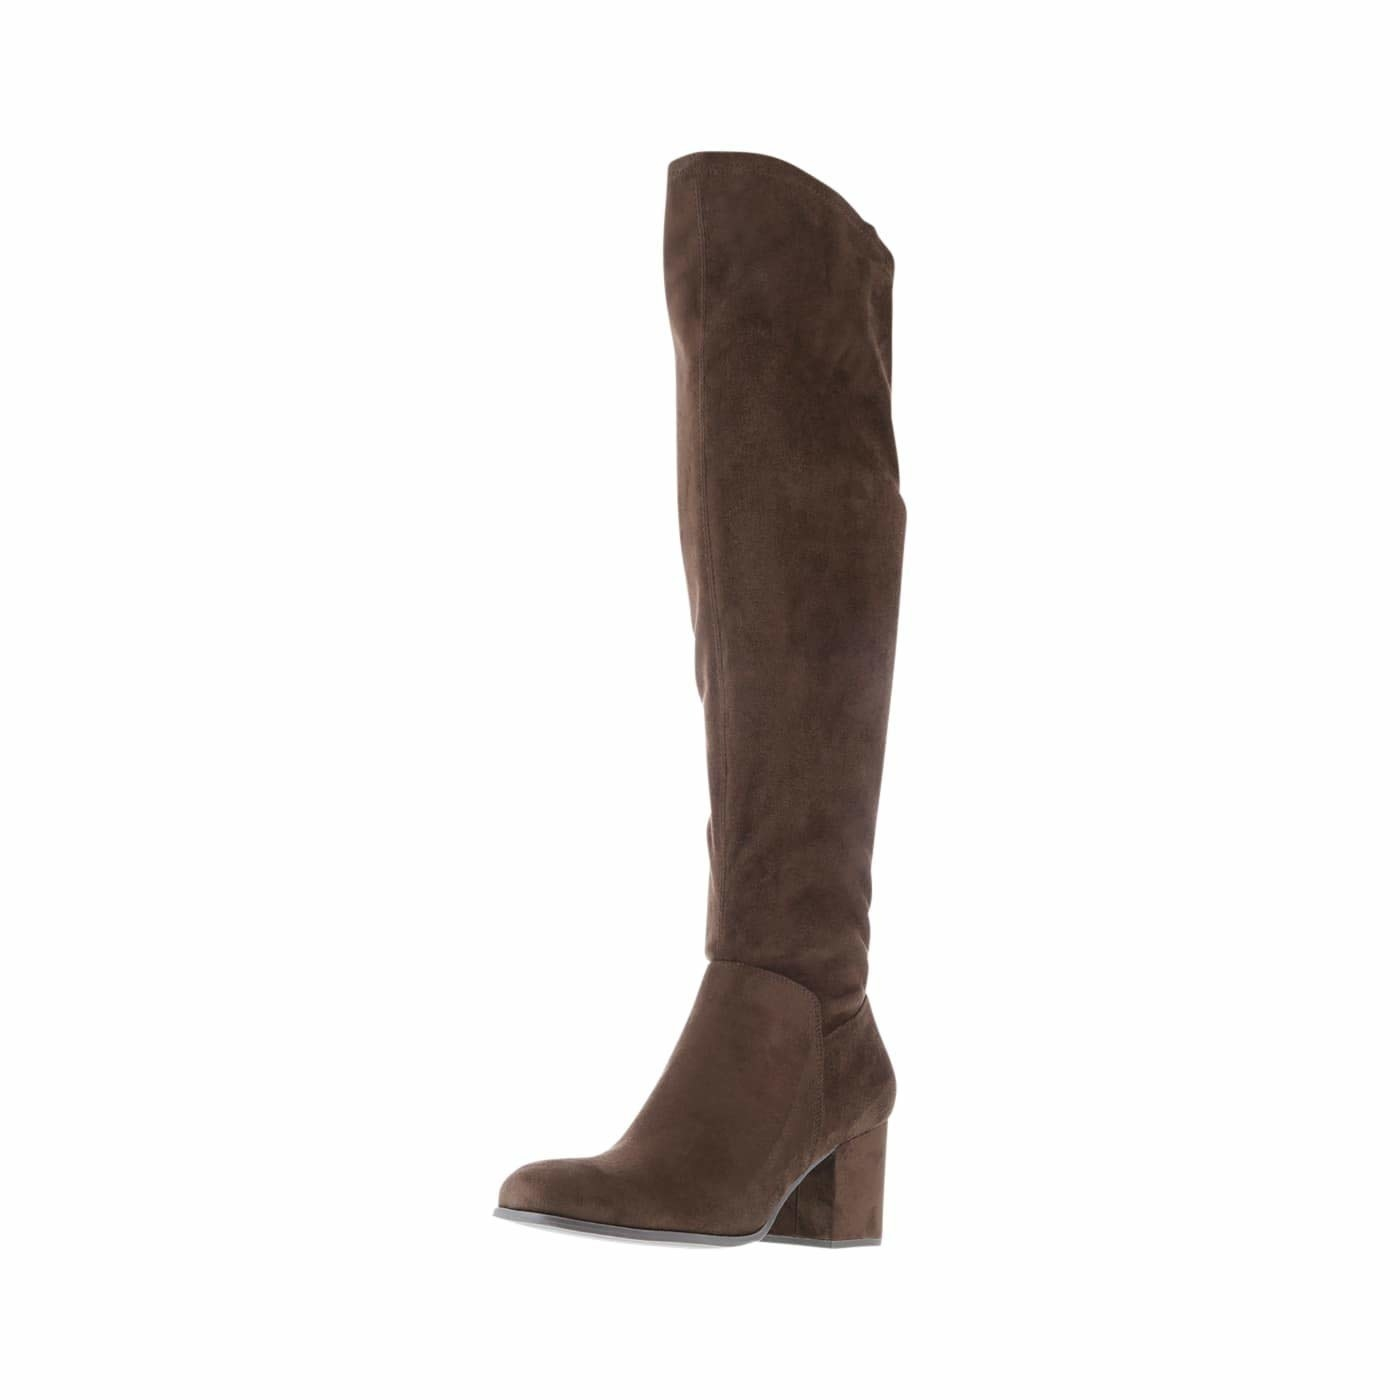 36d5db41e6a 19 Gorgeous Pairs Of Over-The-Knee Boots